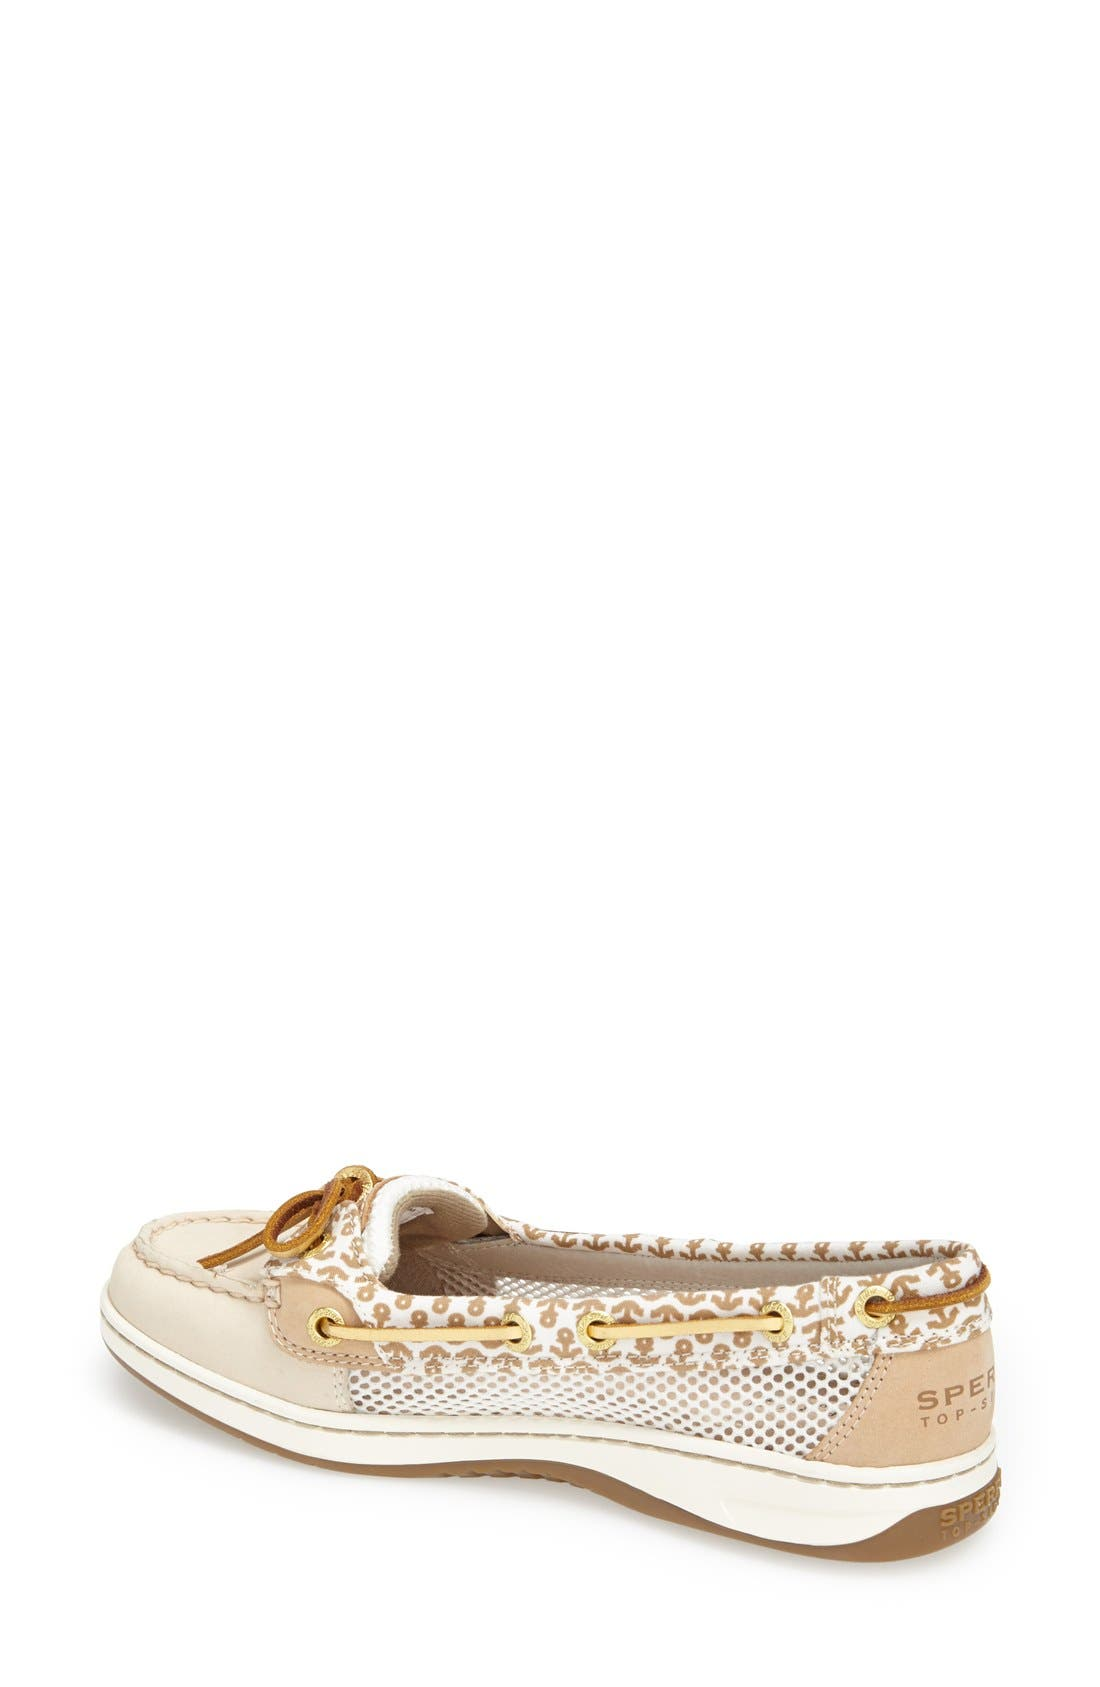 Alternate Image 2  - Sperry 'Angelfish - Critter' Boat Shoe (Women)